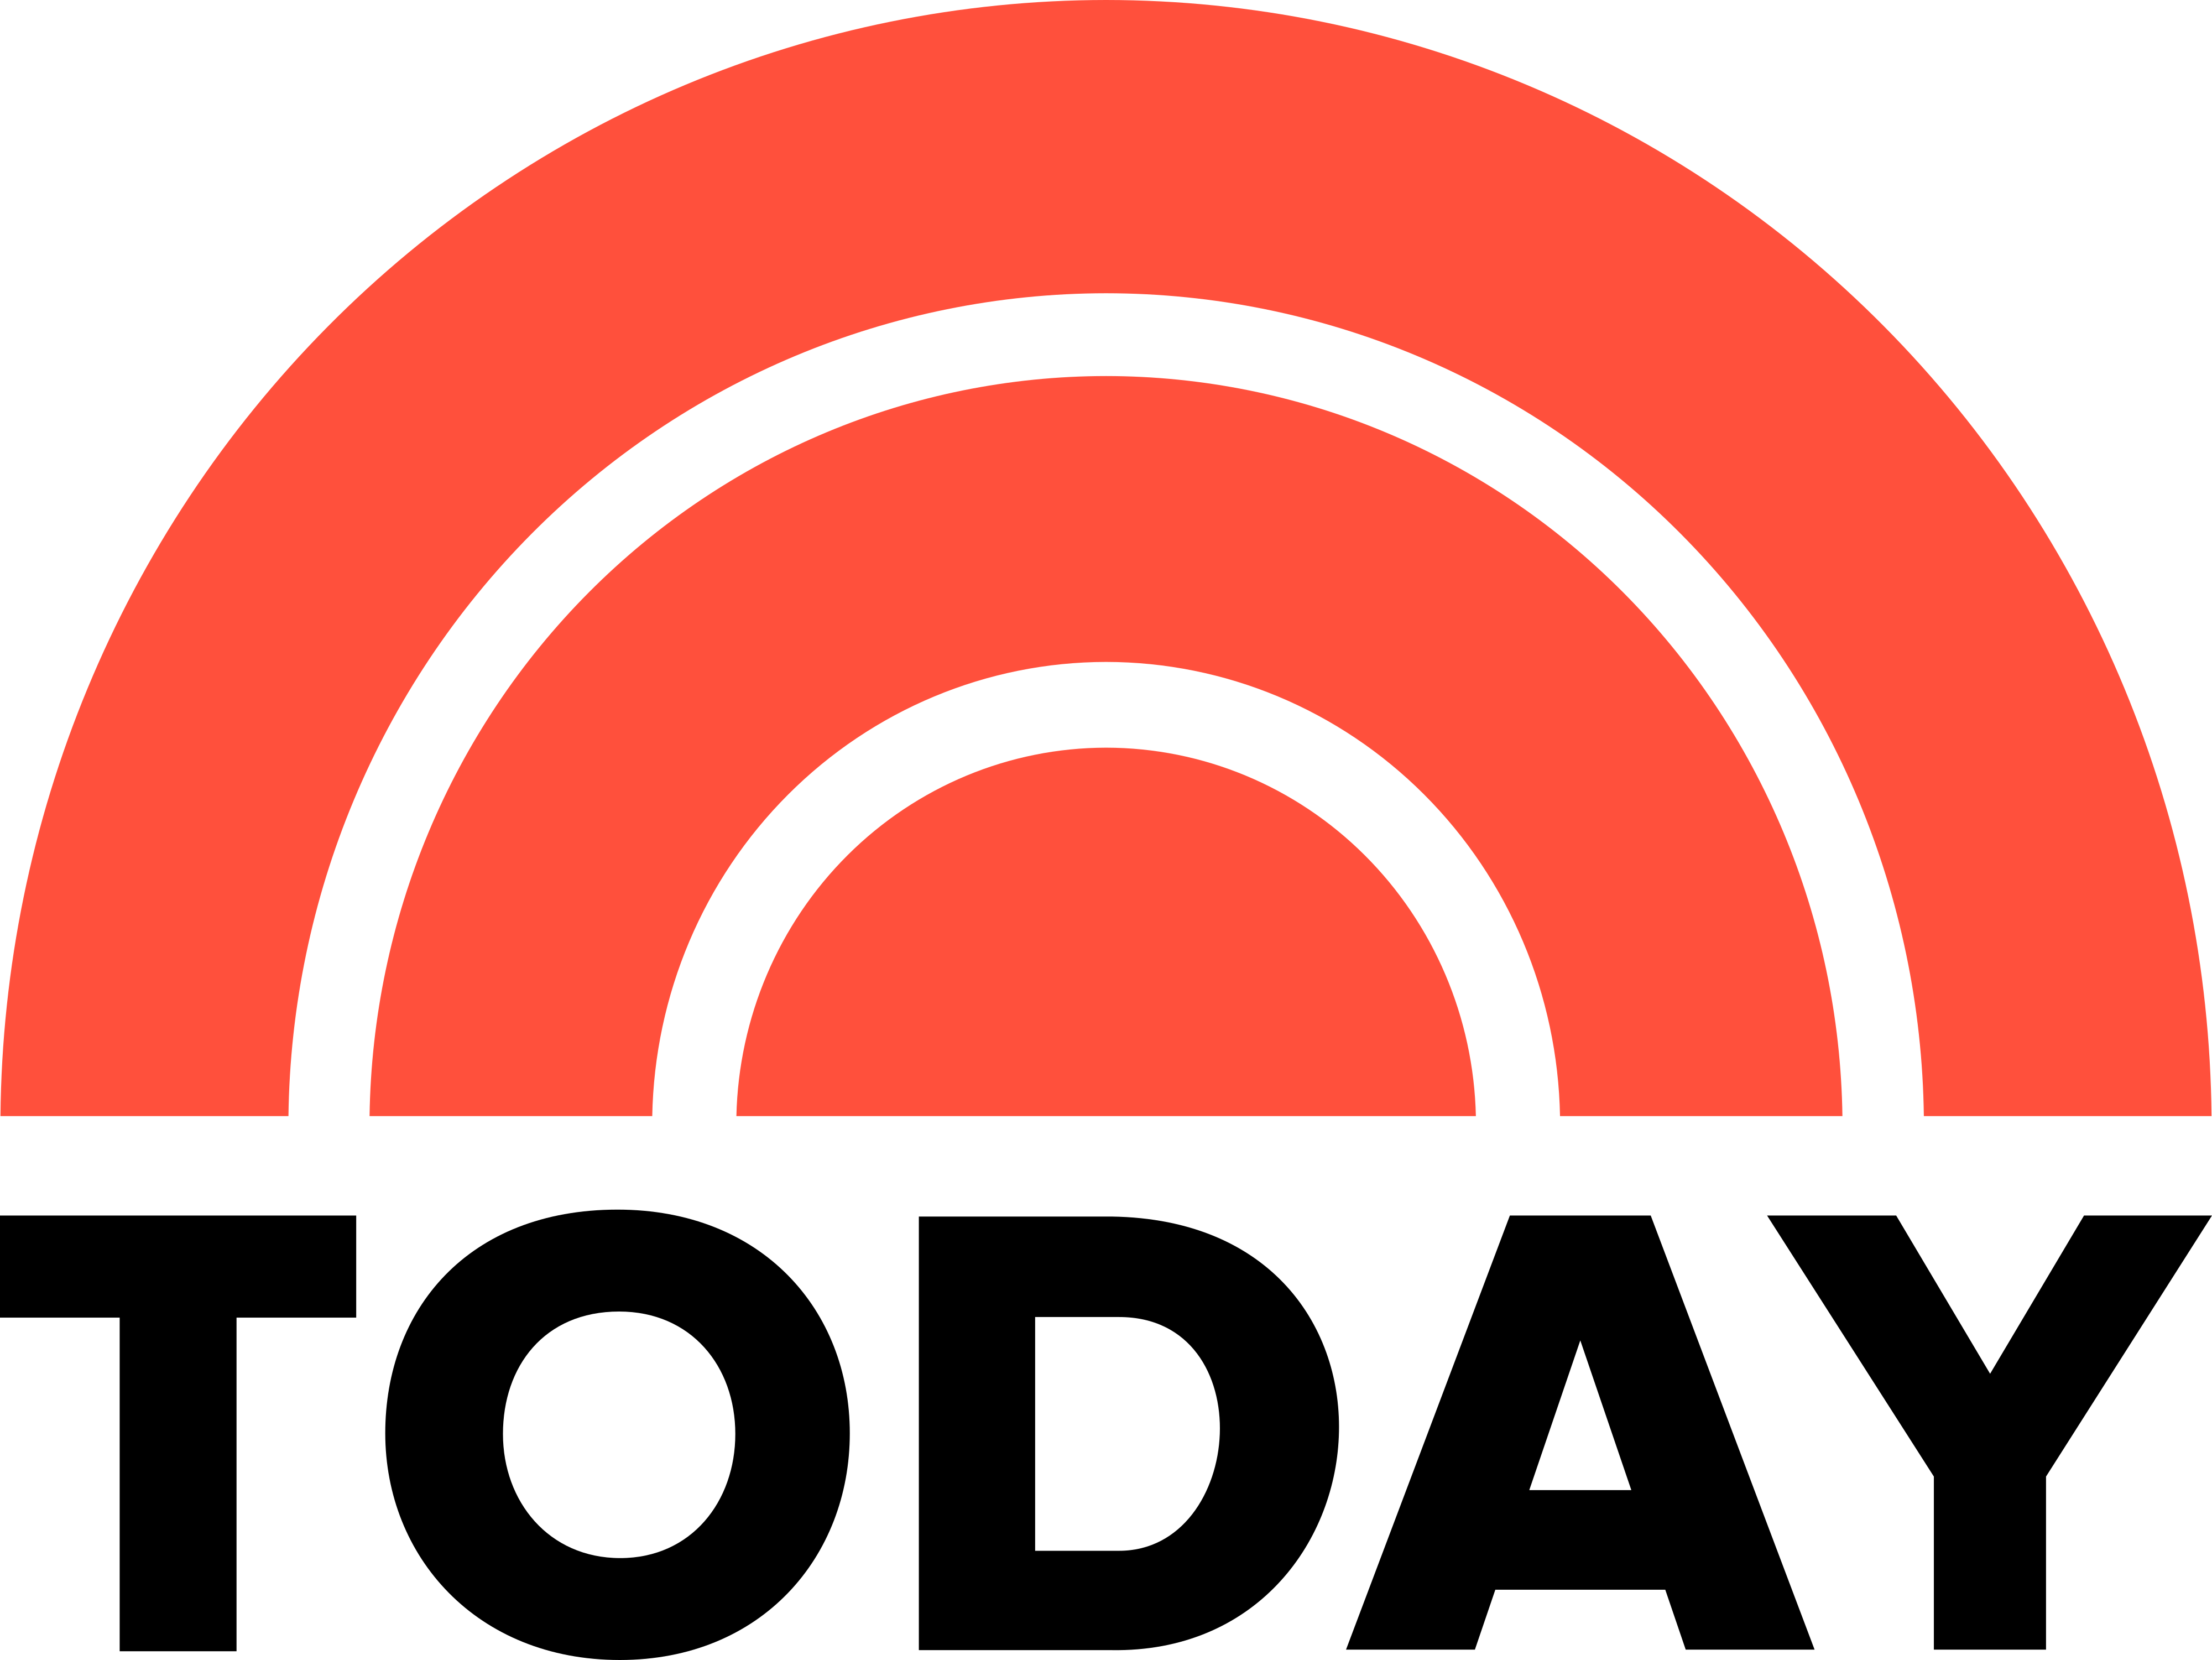 File:Today show logo.png